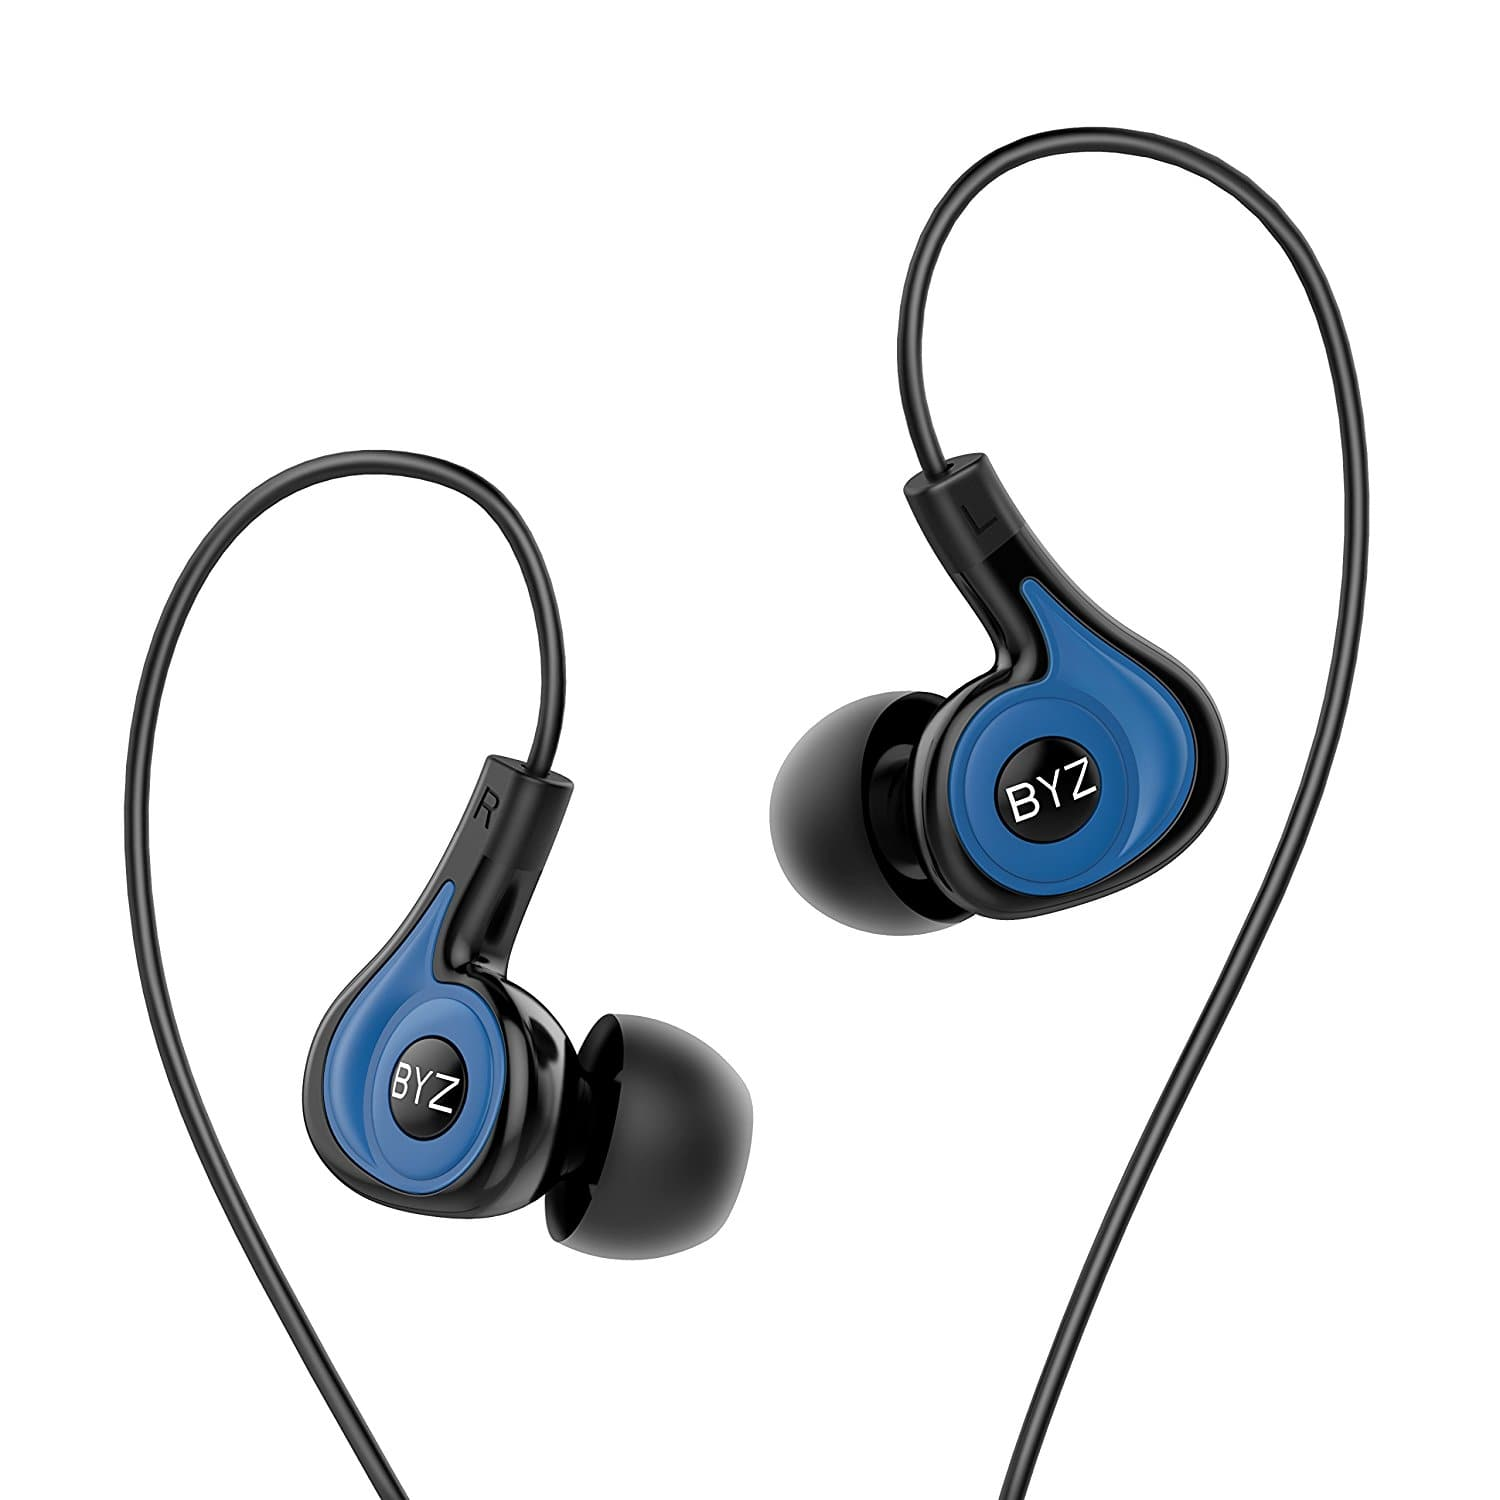 BYZ-K62 Earbuds with Microphone and Volume Control Wired Headphones Prime $4.96